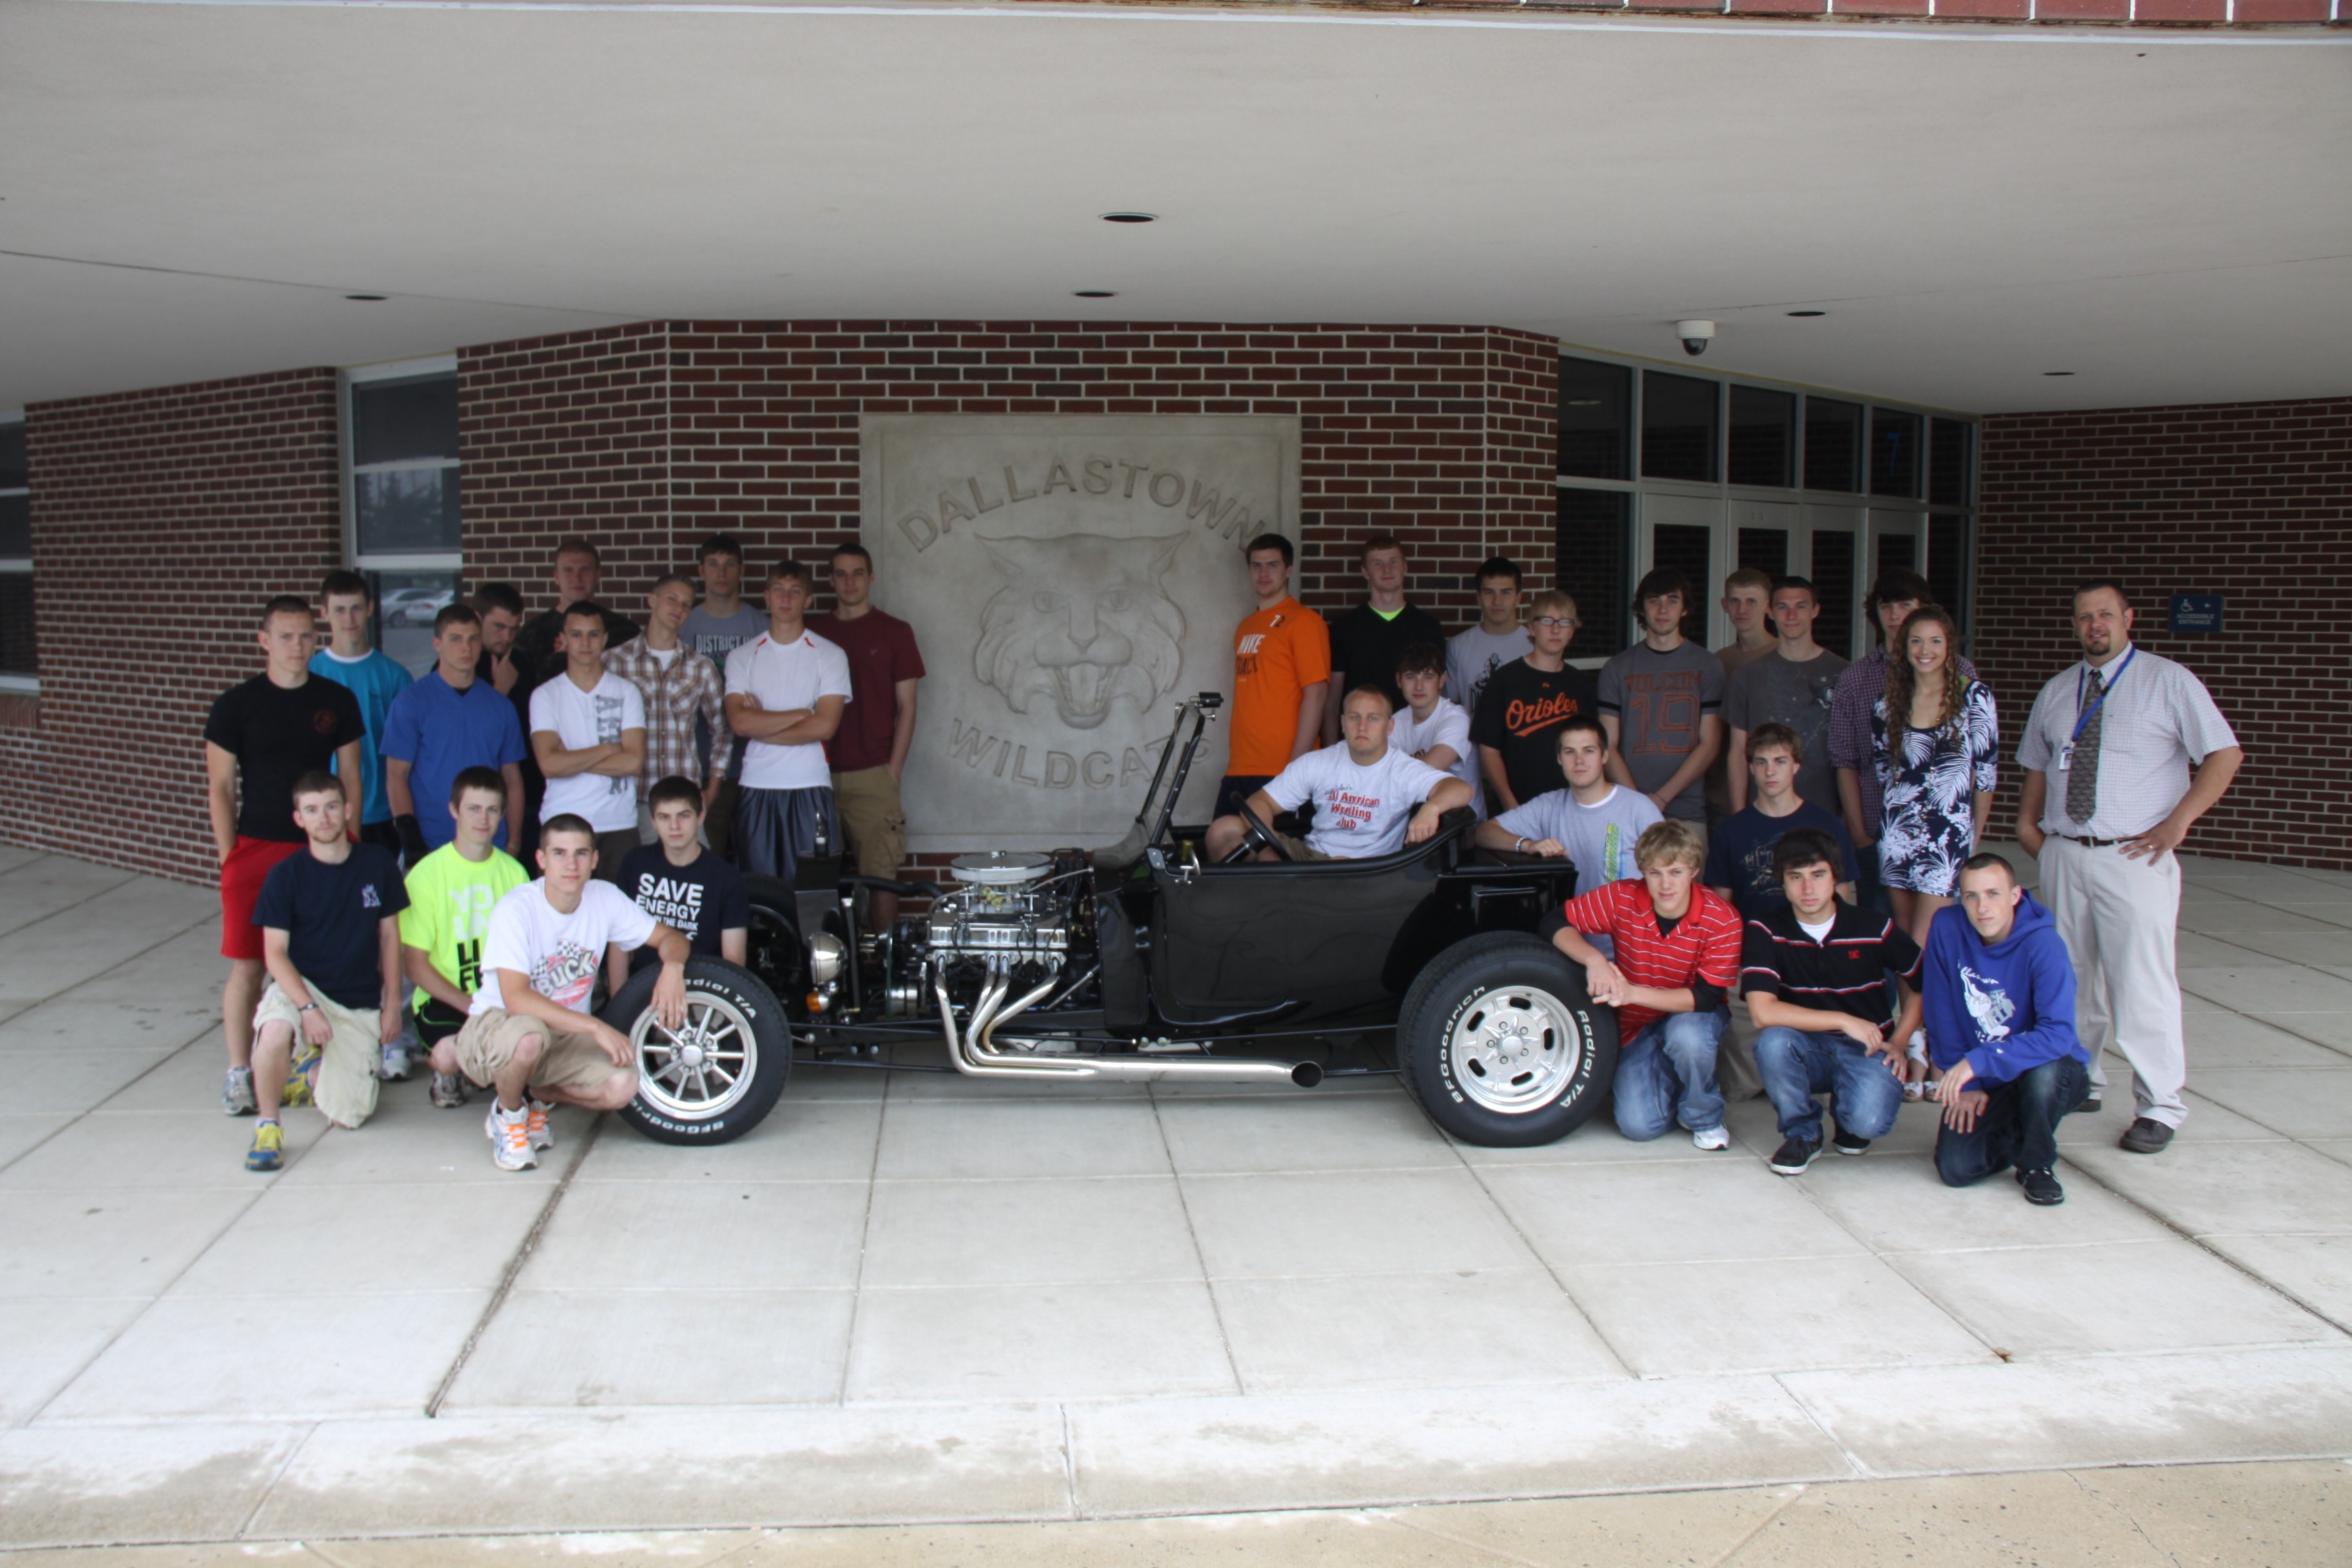 Dallastown High Building Electric Vehicle with Allied Wire | Allied ...